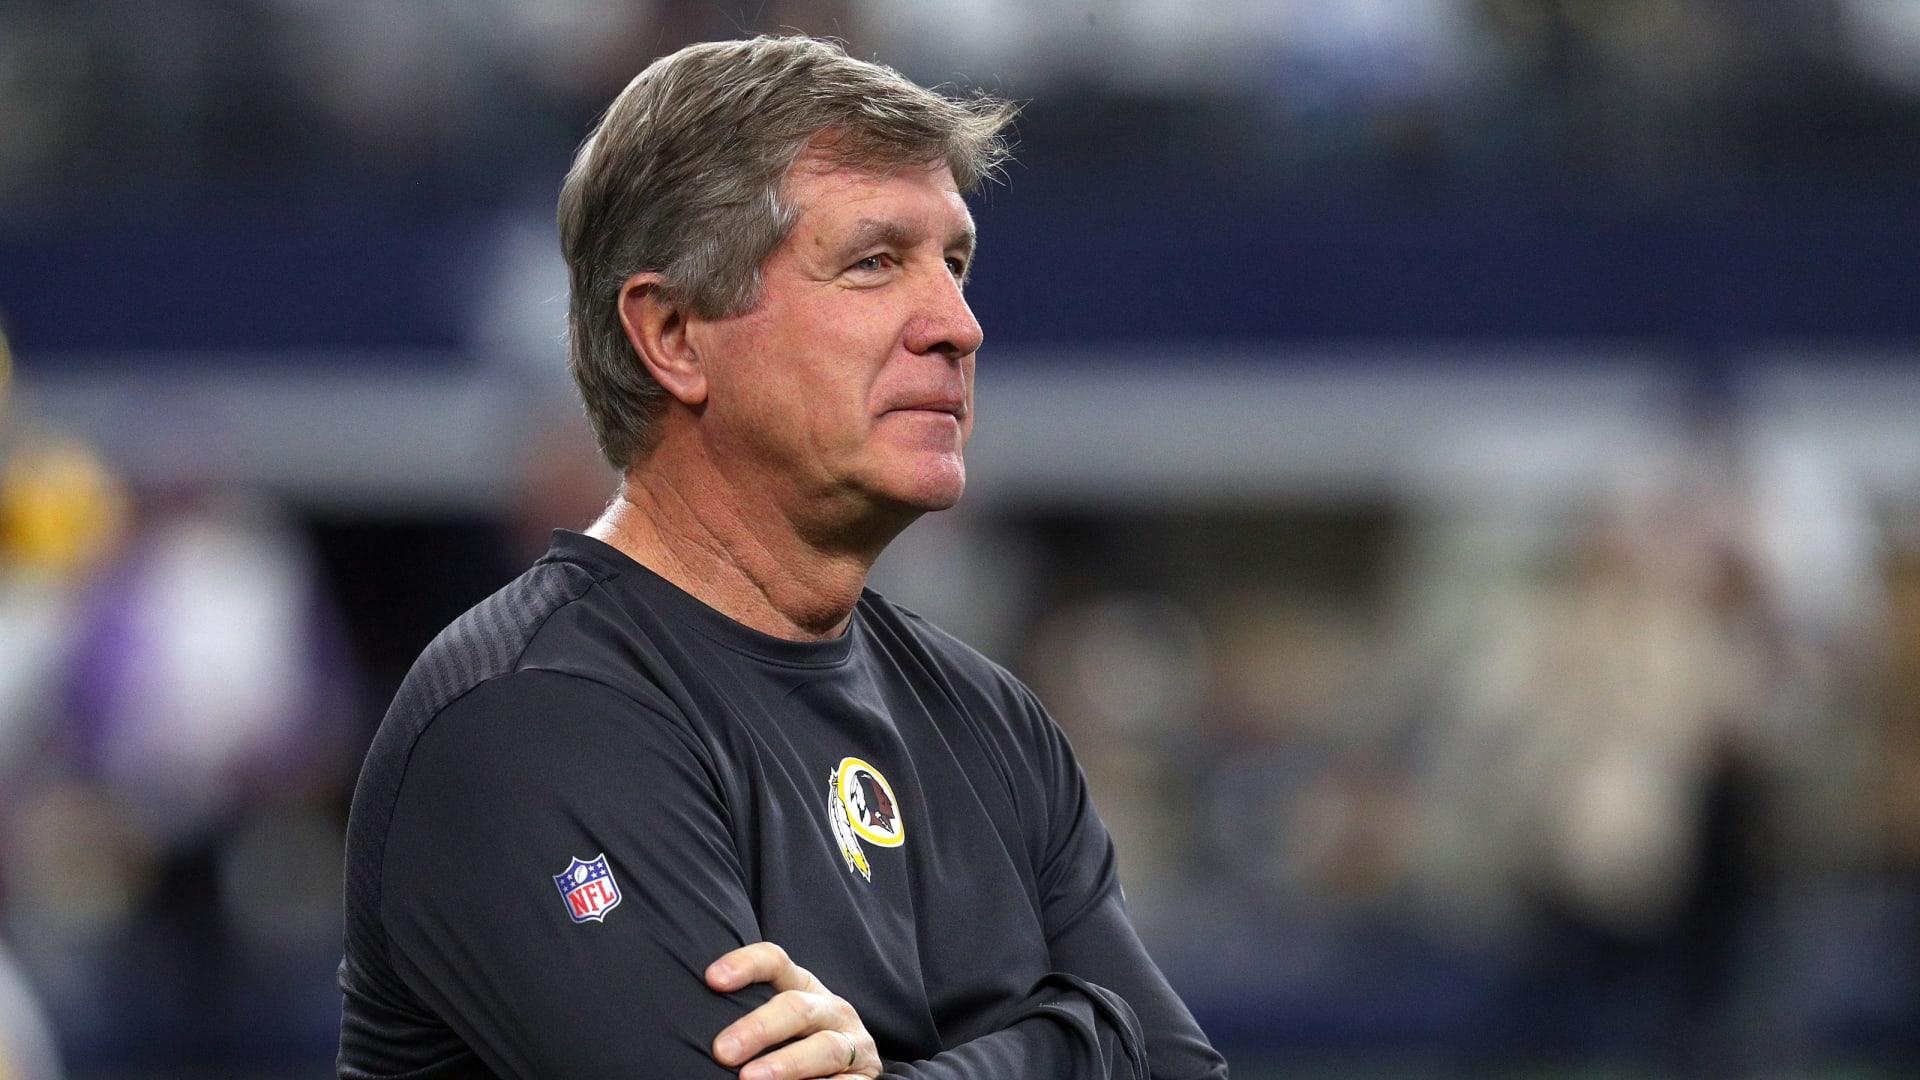 Cleveland Browns Bill Callahan and son Brian will have cross purposes